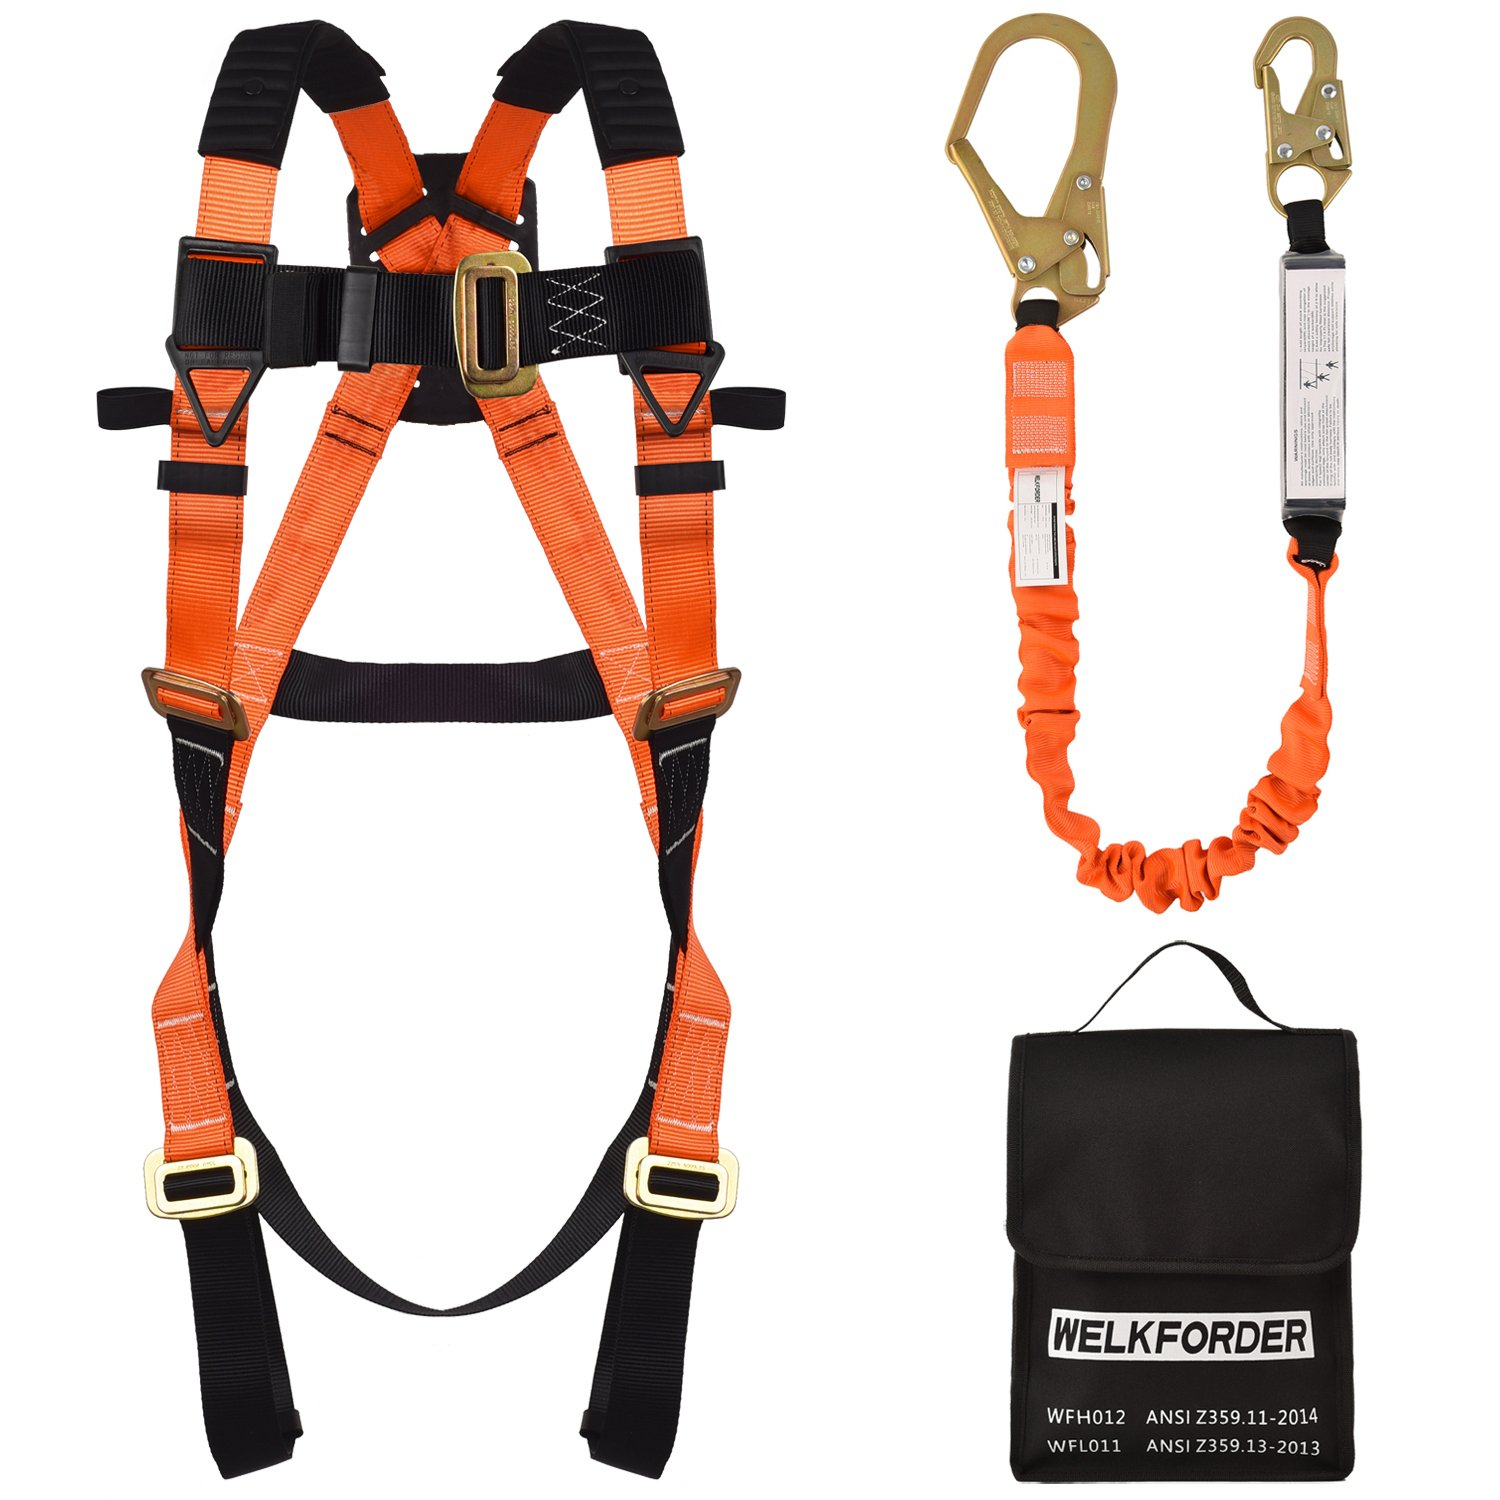 WELKFORDER 1 D-Ring Industrial Fall Protection Safety Harness Kit With Single Leg 6-Foot Shock Absorber Stretch Lanyard ANSI Complaint Personal Fall Arrest System(PFAS)